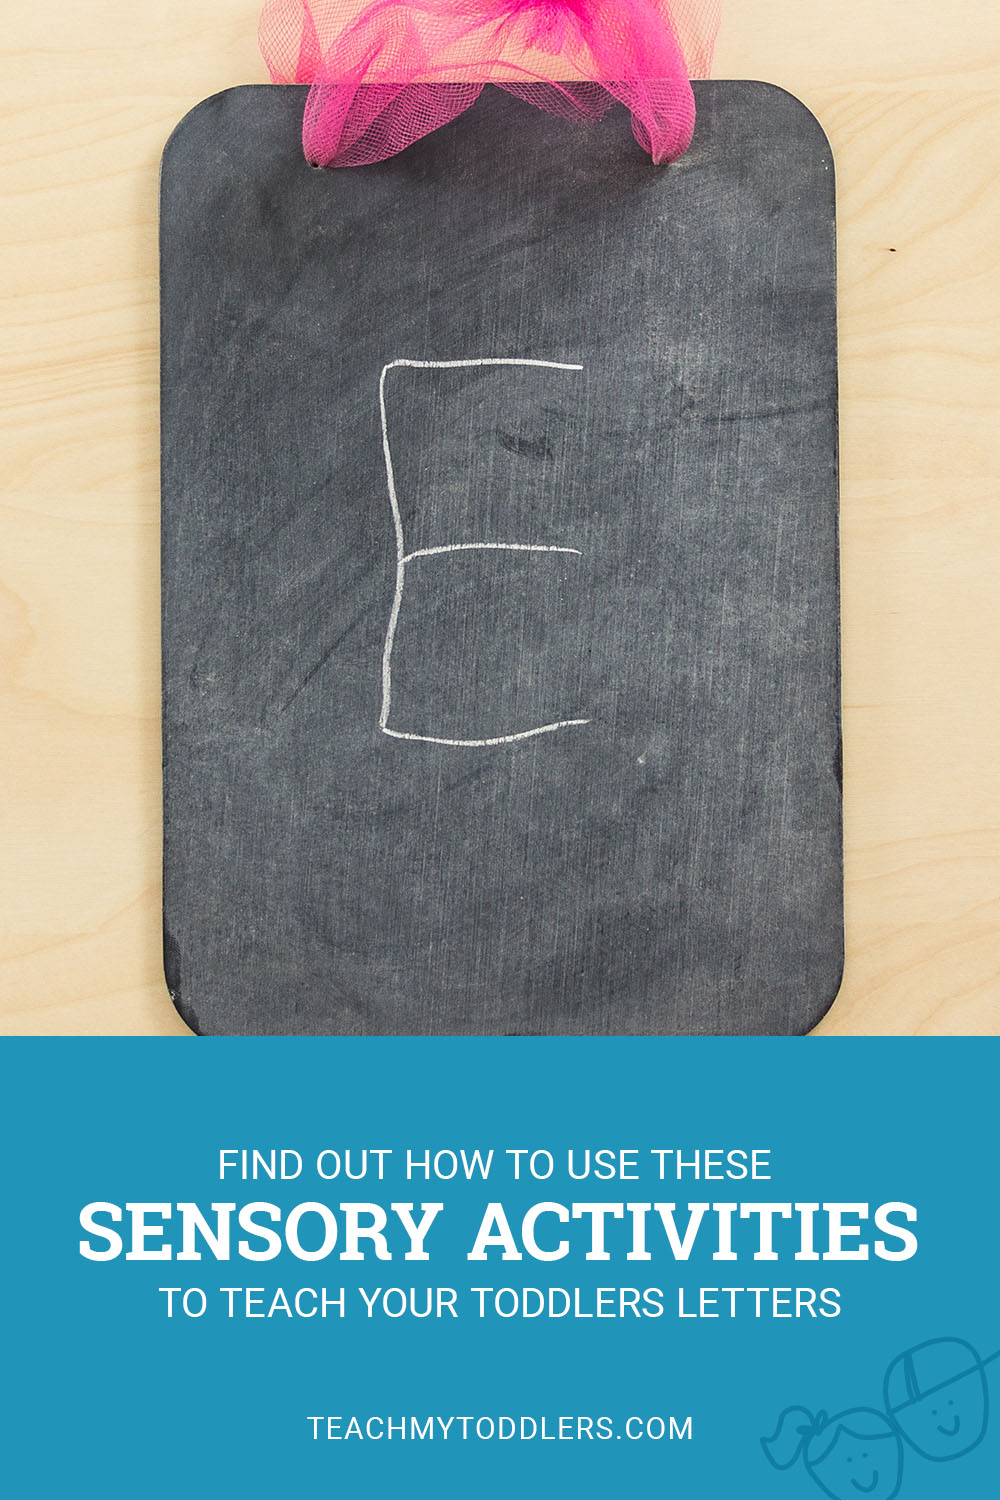 Find out how to use these sensory activities to teach toddlers letters